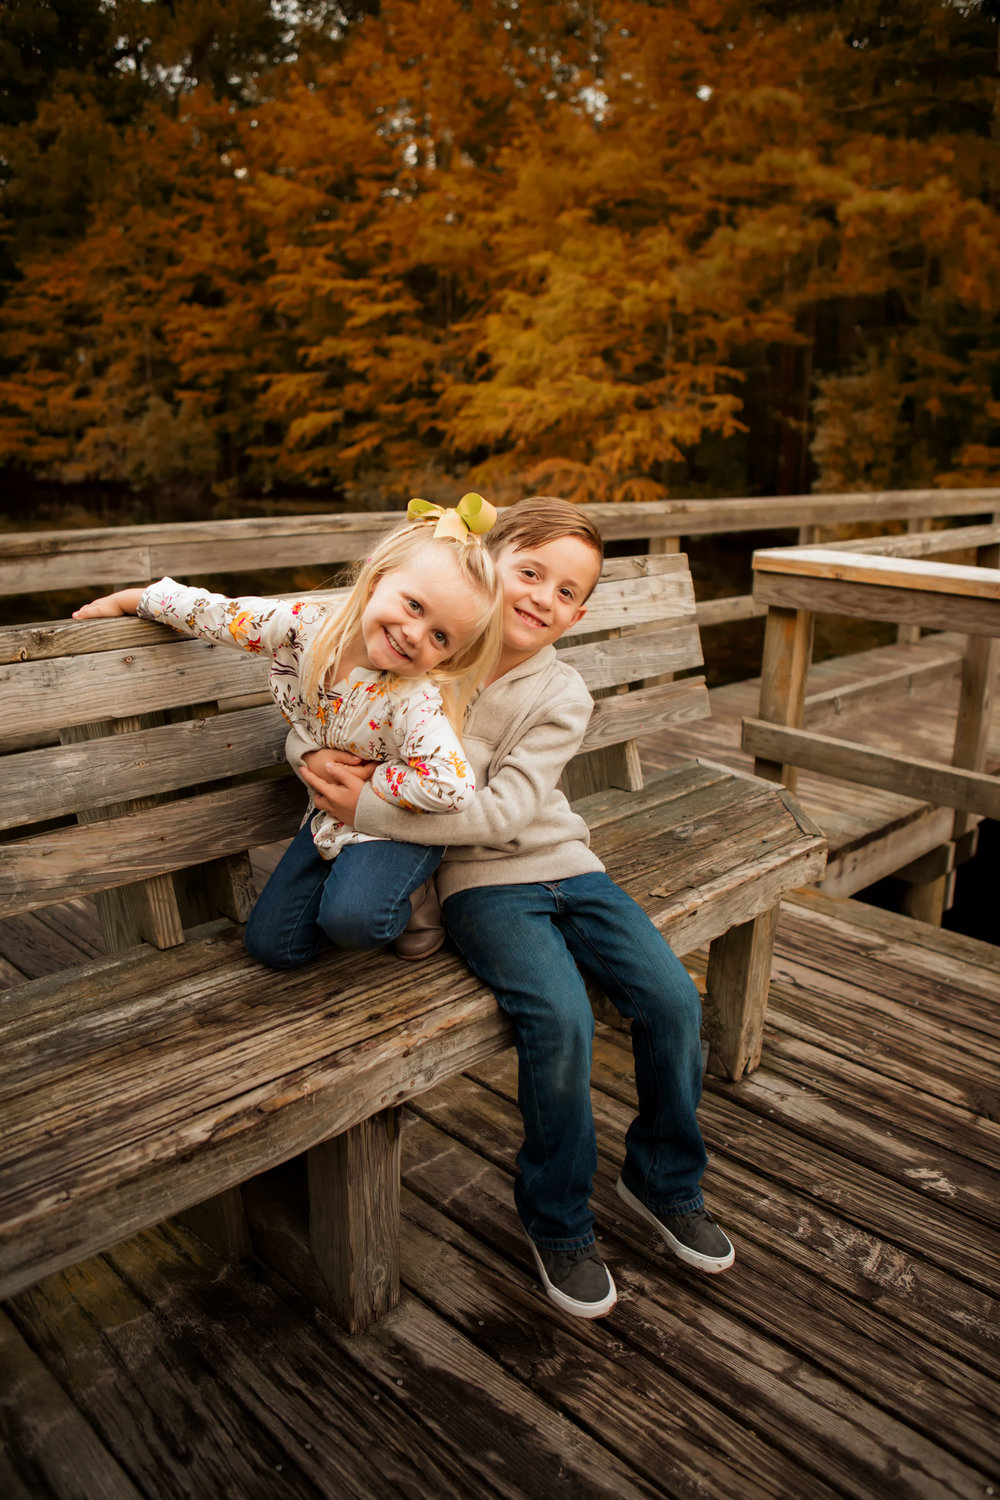 Fall-Woods-Mini-Session-Wilmington-NC-Tiffany-Abruzzo-Photography-20.jpg